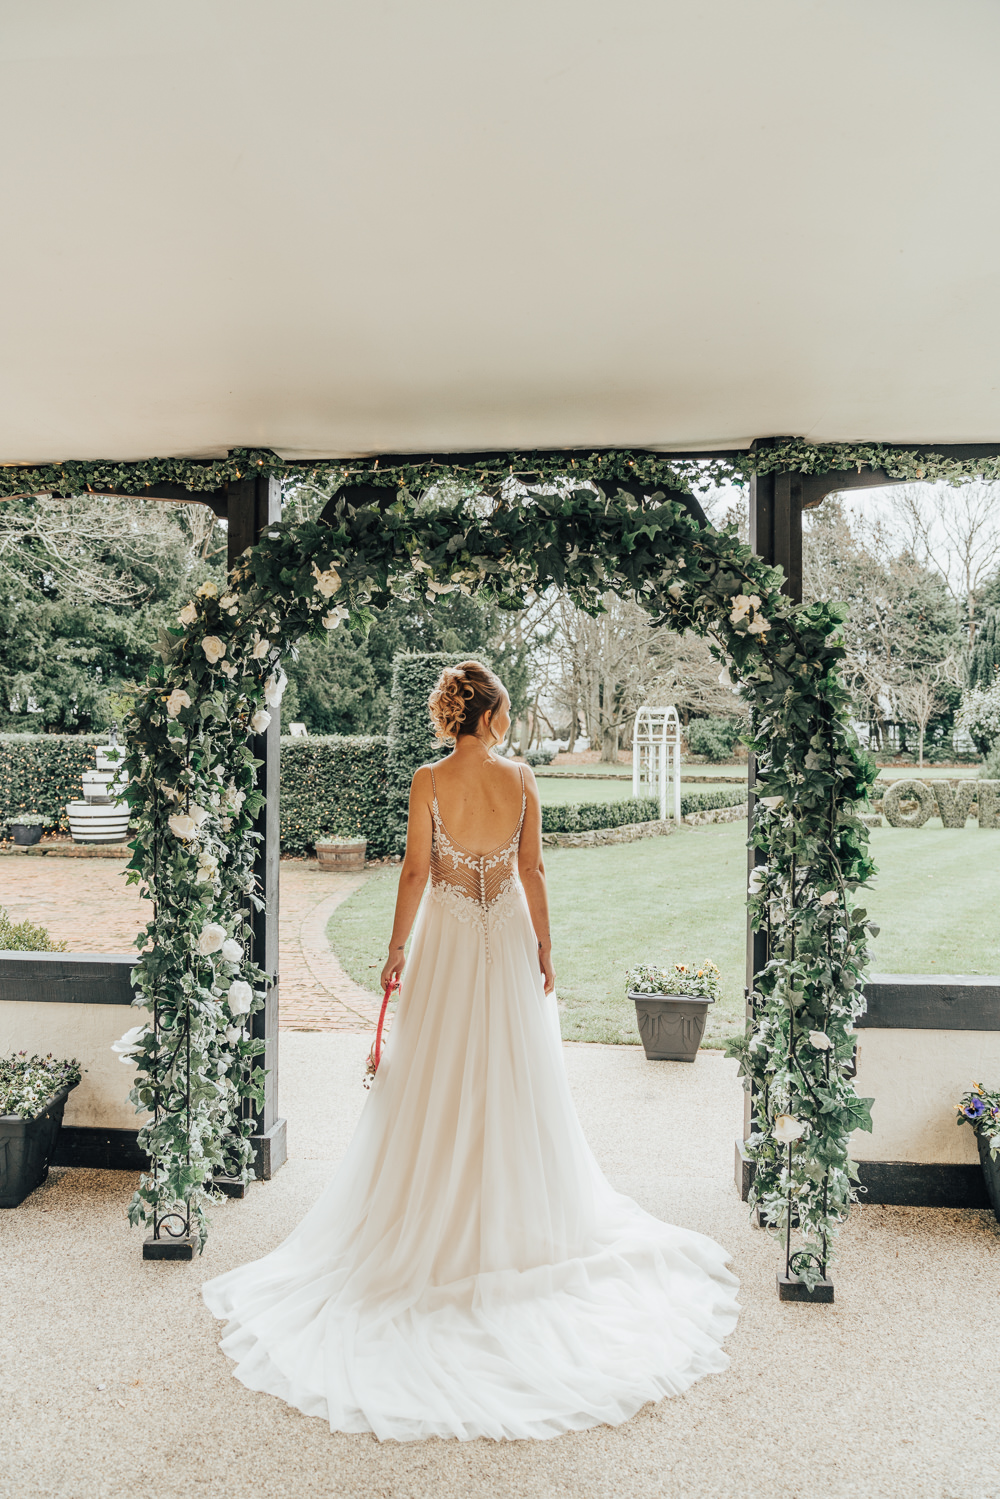 Dress Gown Bride Bridal Train Beaded Lace Back Straps Greenery Foliage Arch Flower Backdrop Hoop Wedding Ideas Rebecca Carpenter Photography